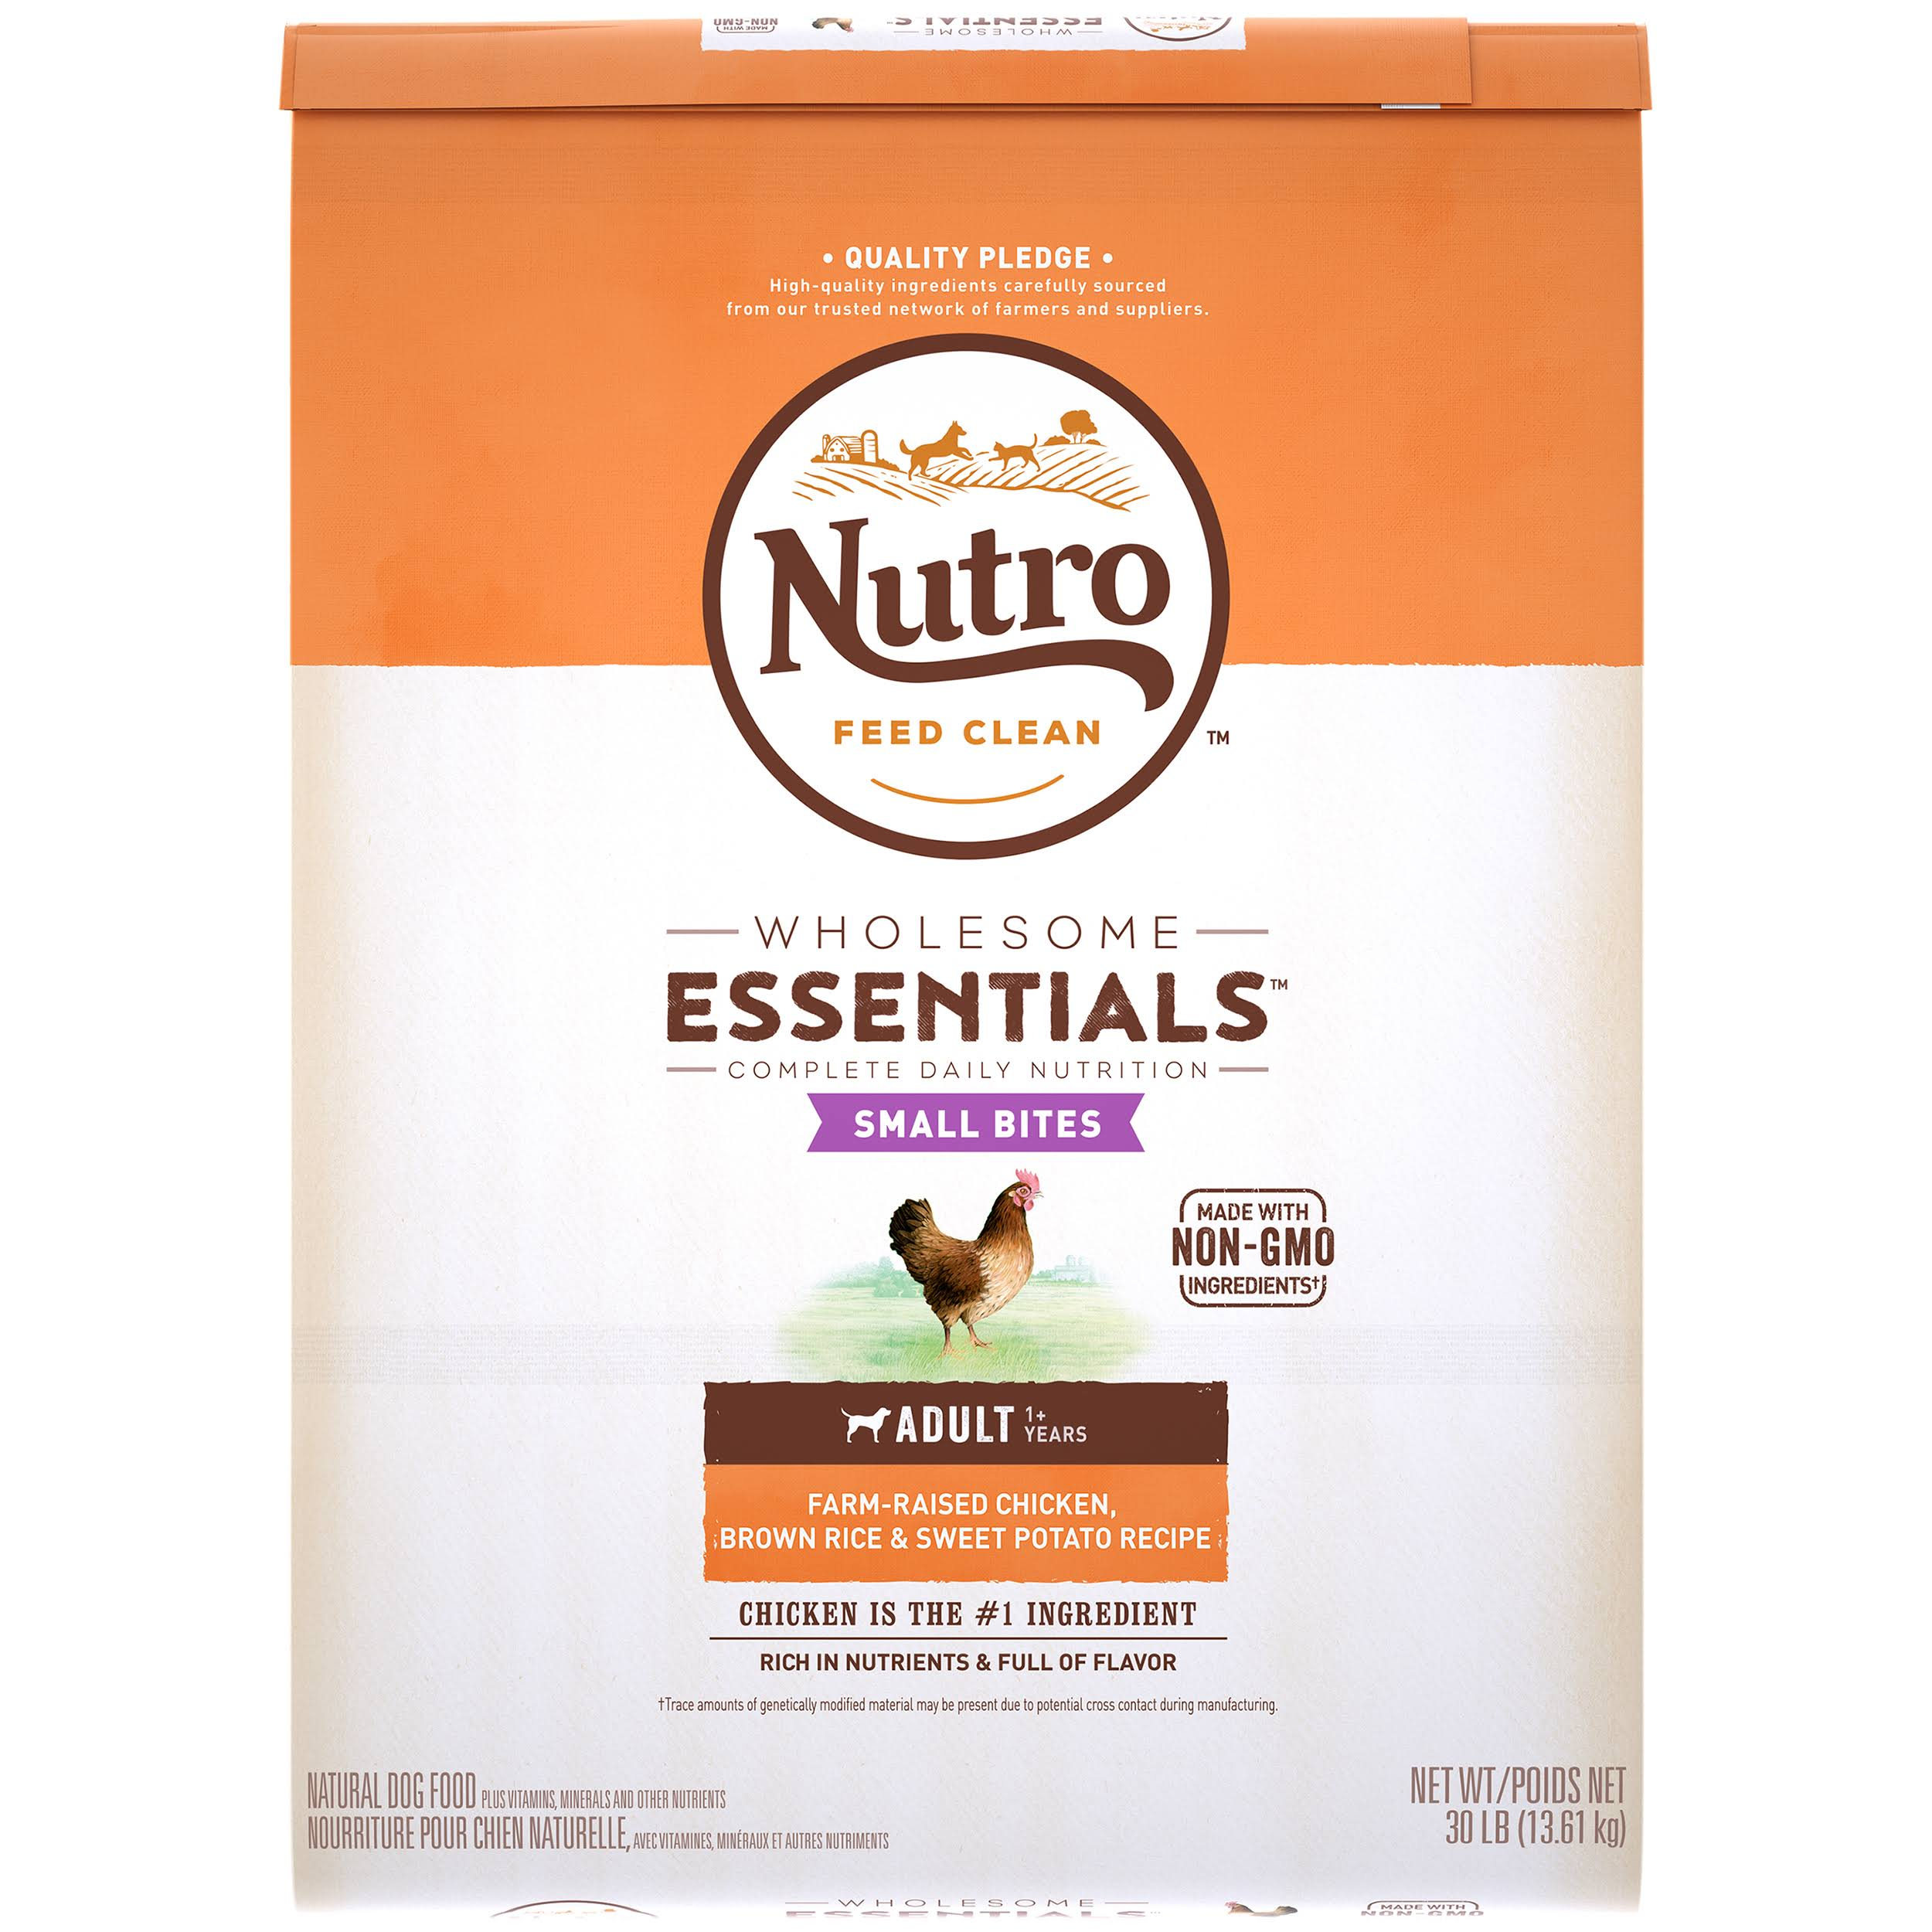 Nutro Wholesome Essentials Small Bites Adult Dry Dog Food - Chicken, Brown Rice & Sweet Potato, 30lbs